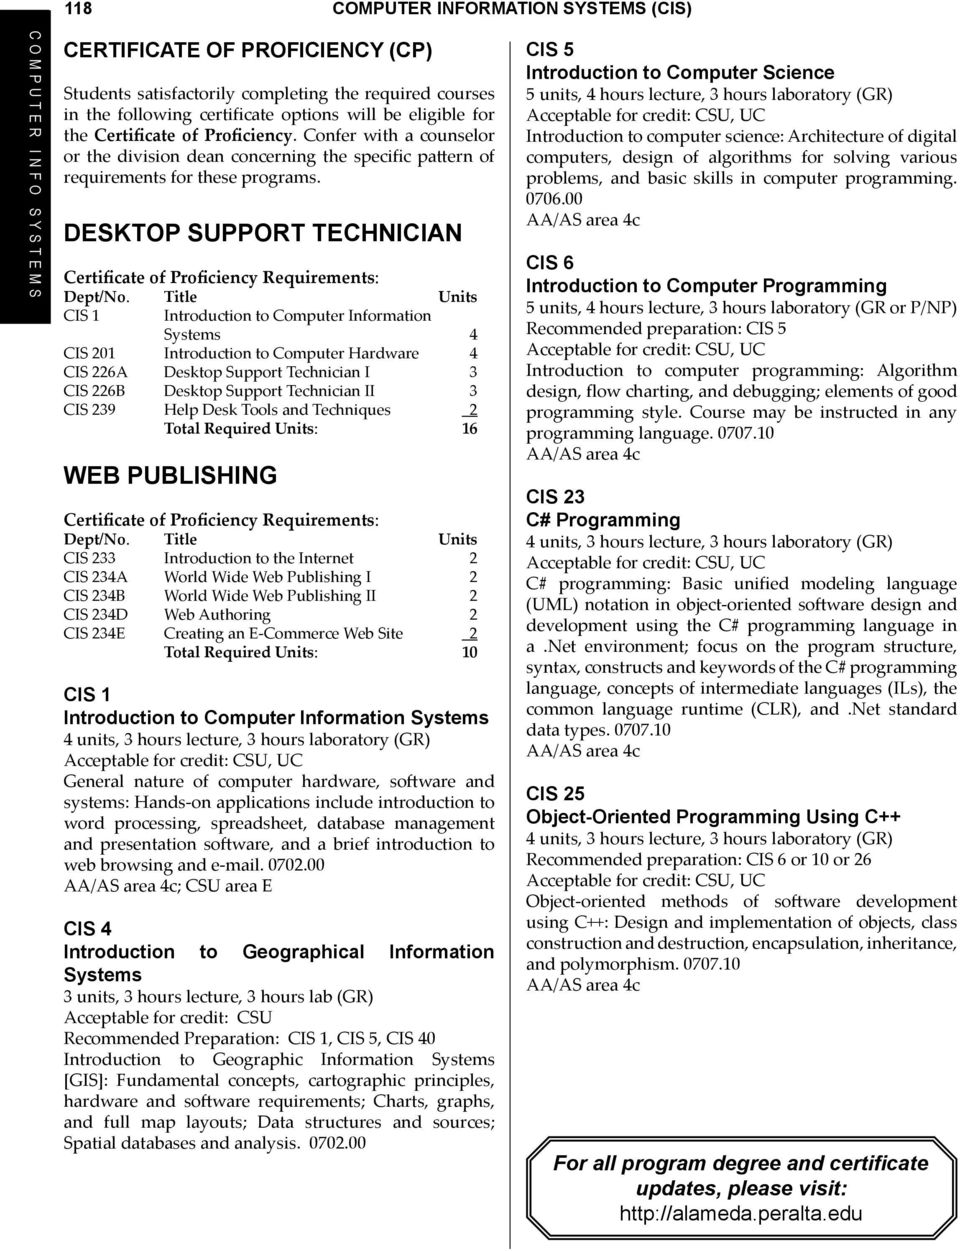 Desktop Suppt Technician Certificate of Proficiency Requirements: CIS 1 Introduction to Computer Infmation 4 CIS 201 Introduction to Computer Hardware 4 CIS 226A Desktop Suppt Technician I 3 CIS 226B